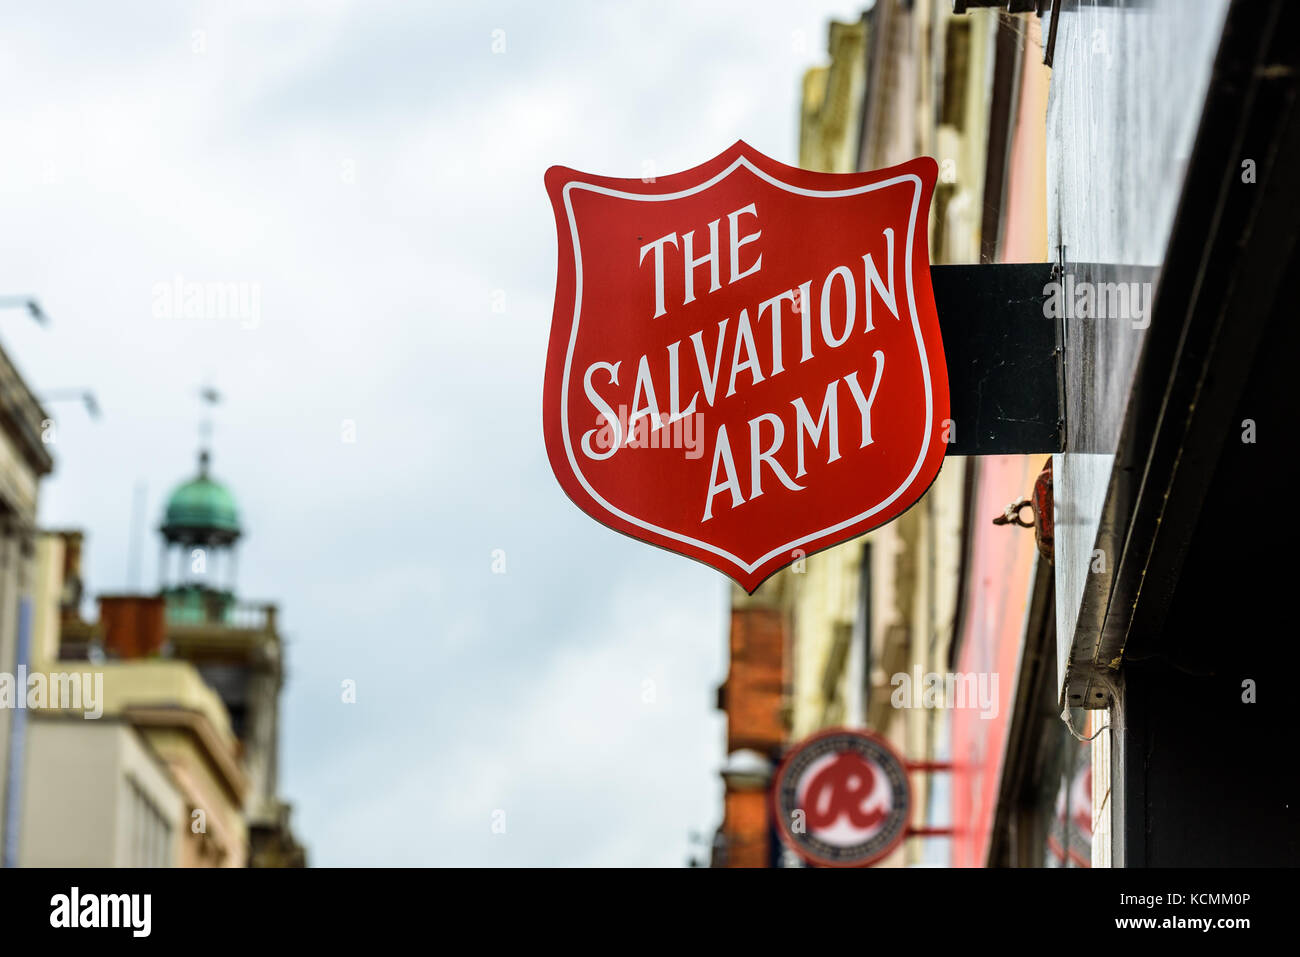 Northampton UK October 5, 2017: The Salvation Army logo sign in Northampton town centre. - Stock Image